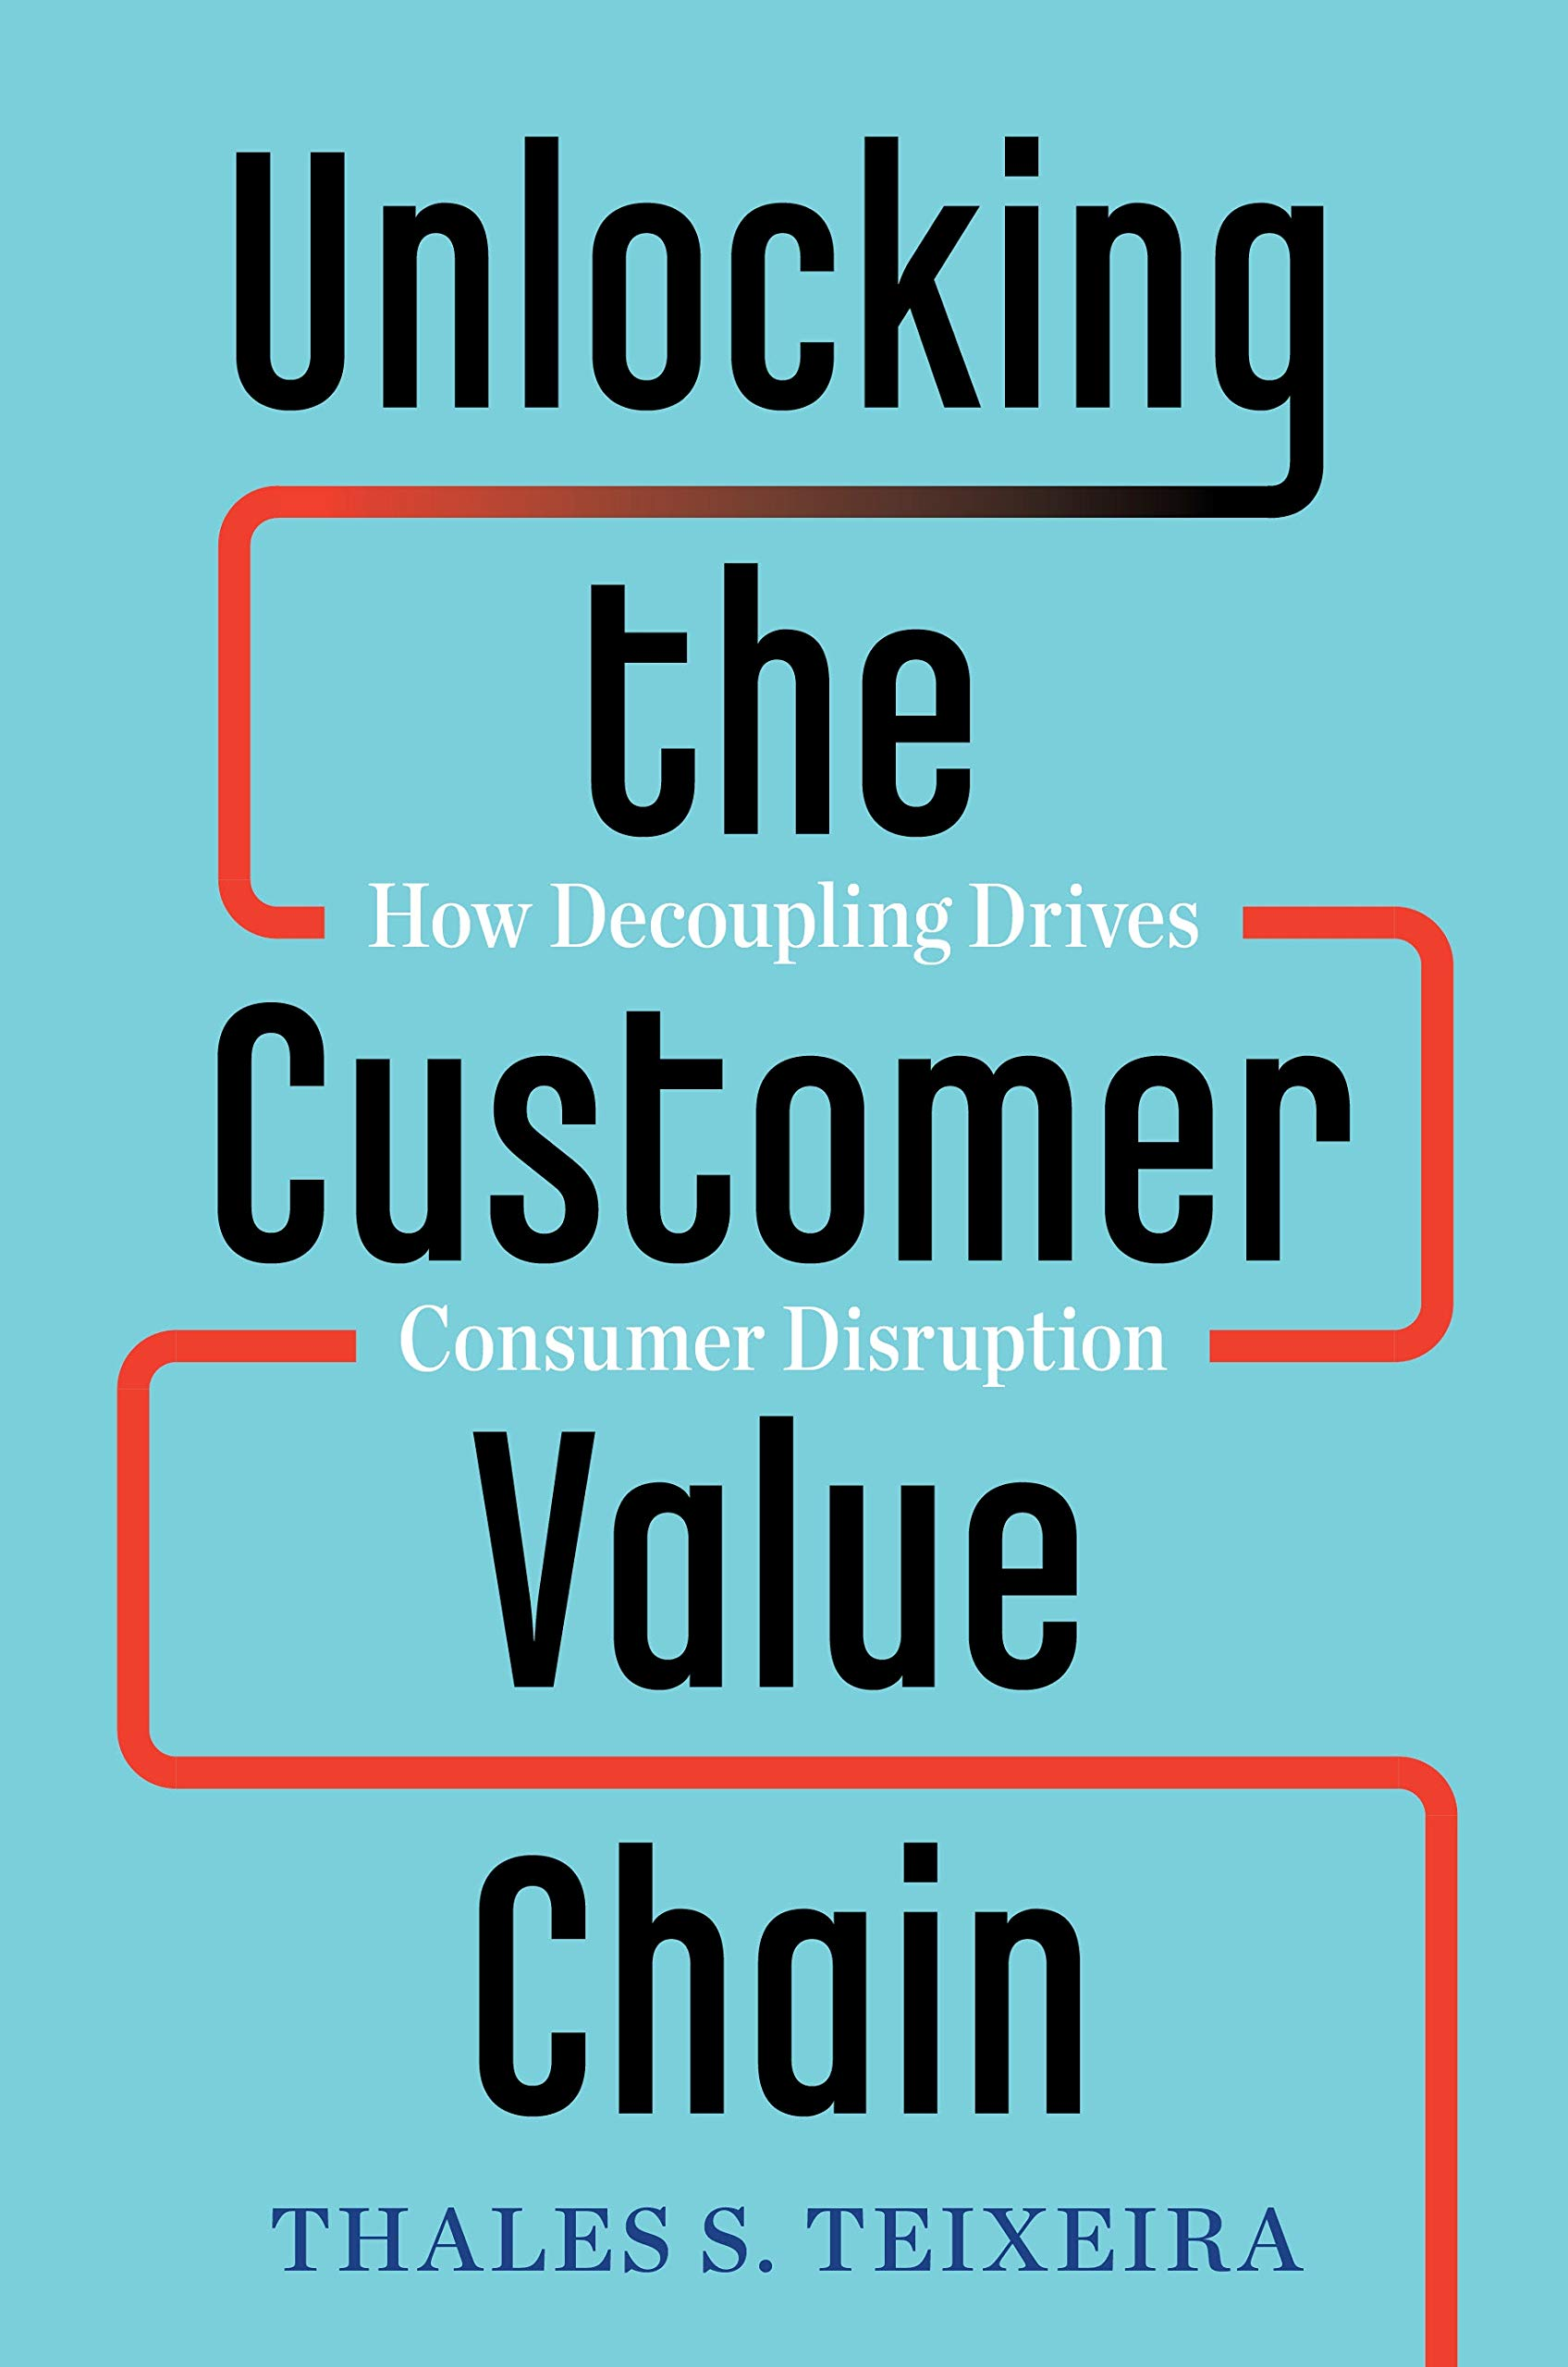 Based on six years of research, Harvard Business School professor Thales Teixeira shows how and why industries are disrupted, and what established companies can do to respond--as well as what potential startups must master if they hope to gain a competitive edge.